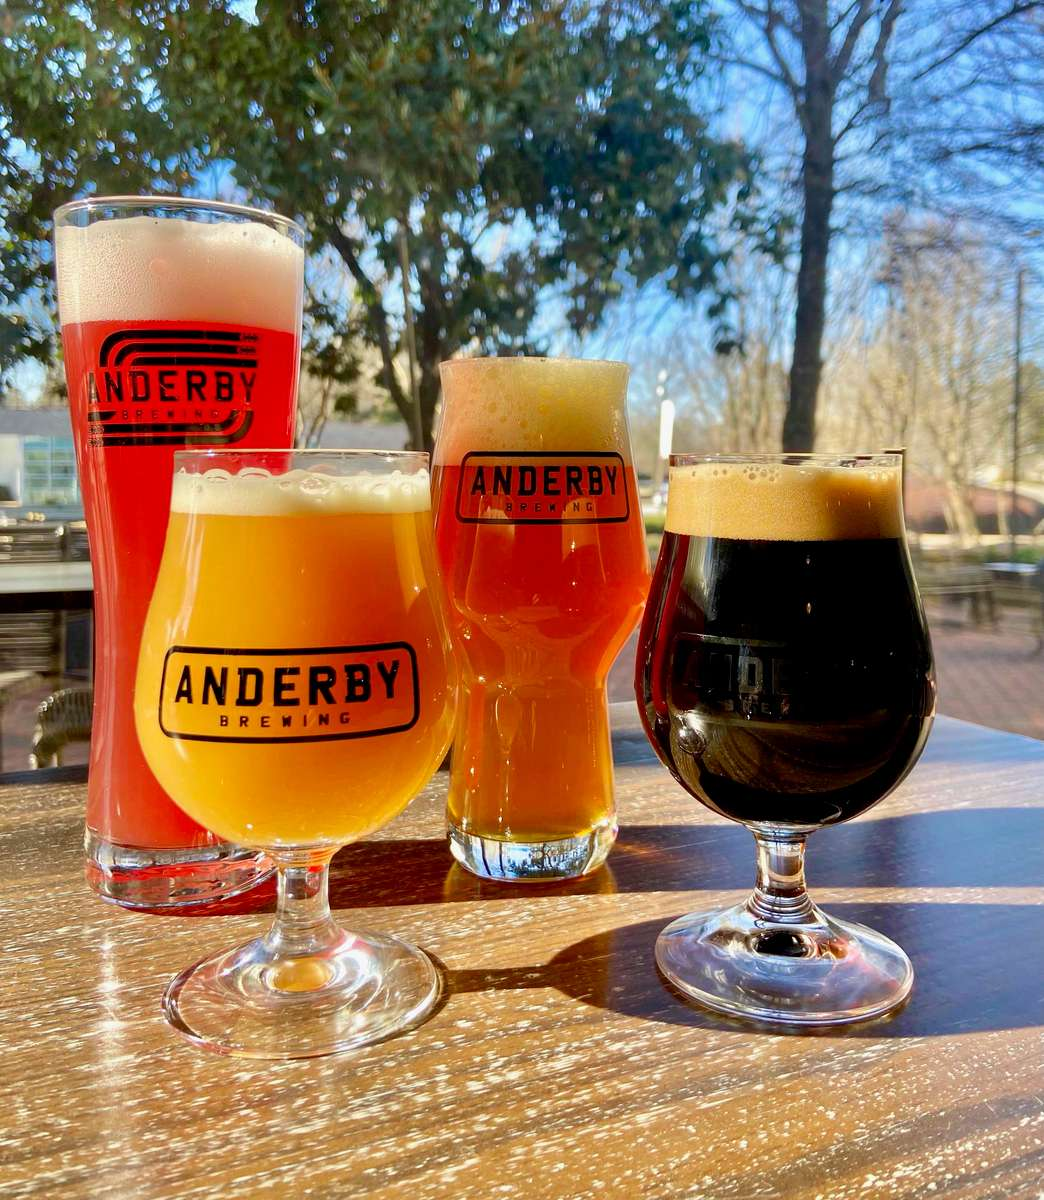 Anderby Brewing Selection